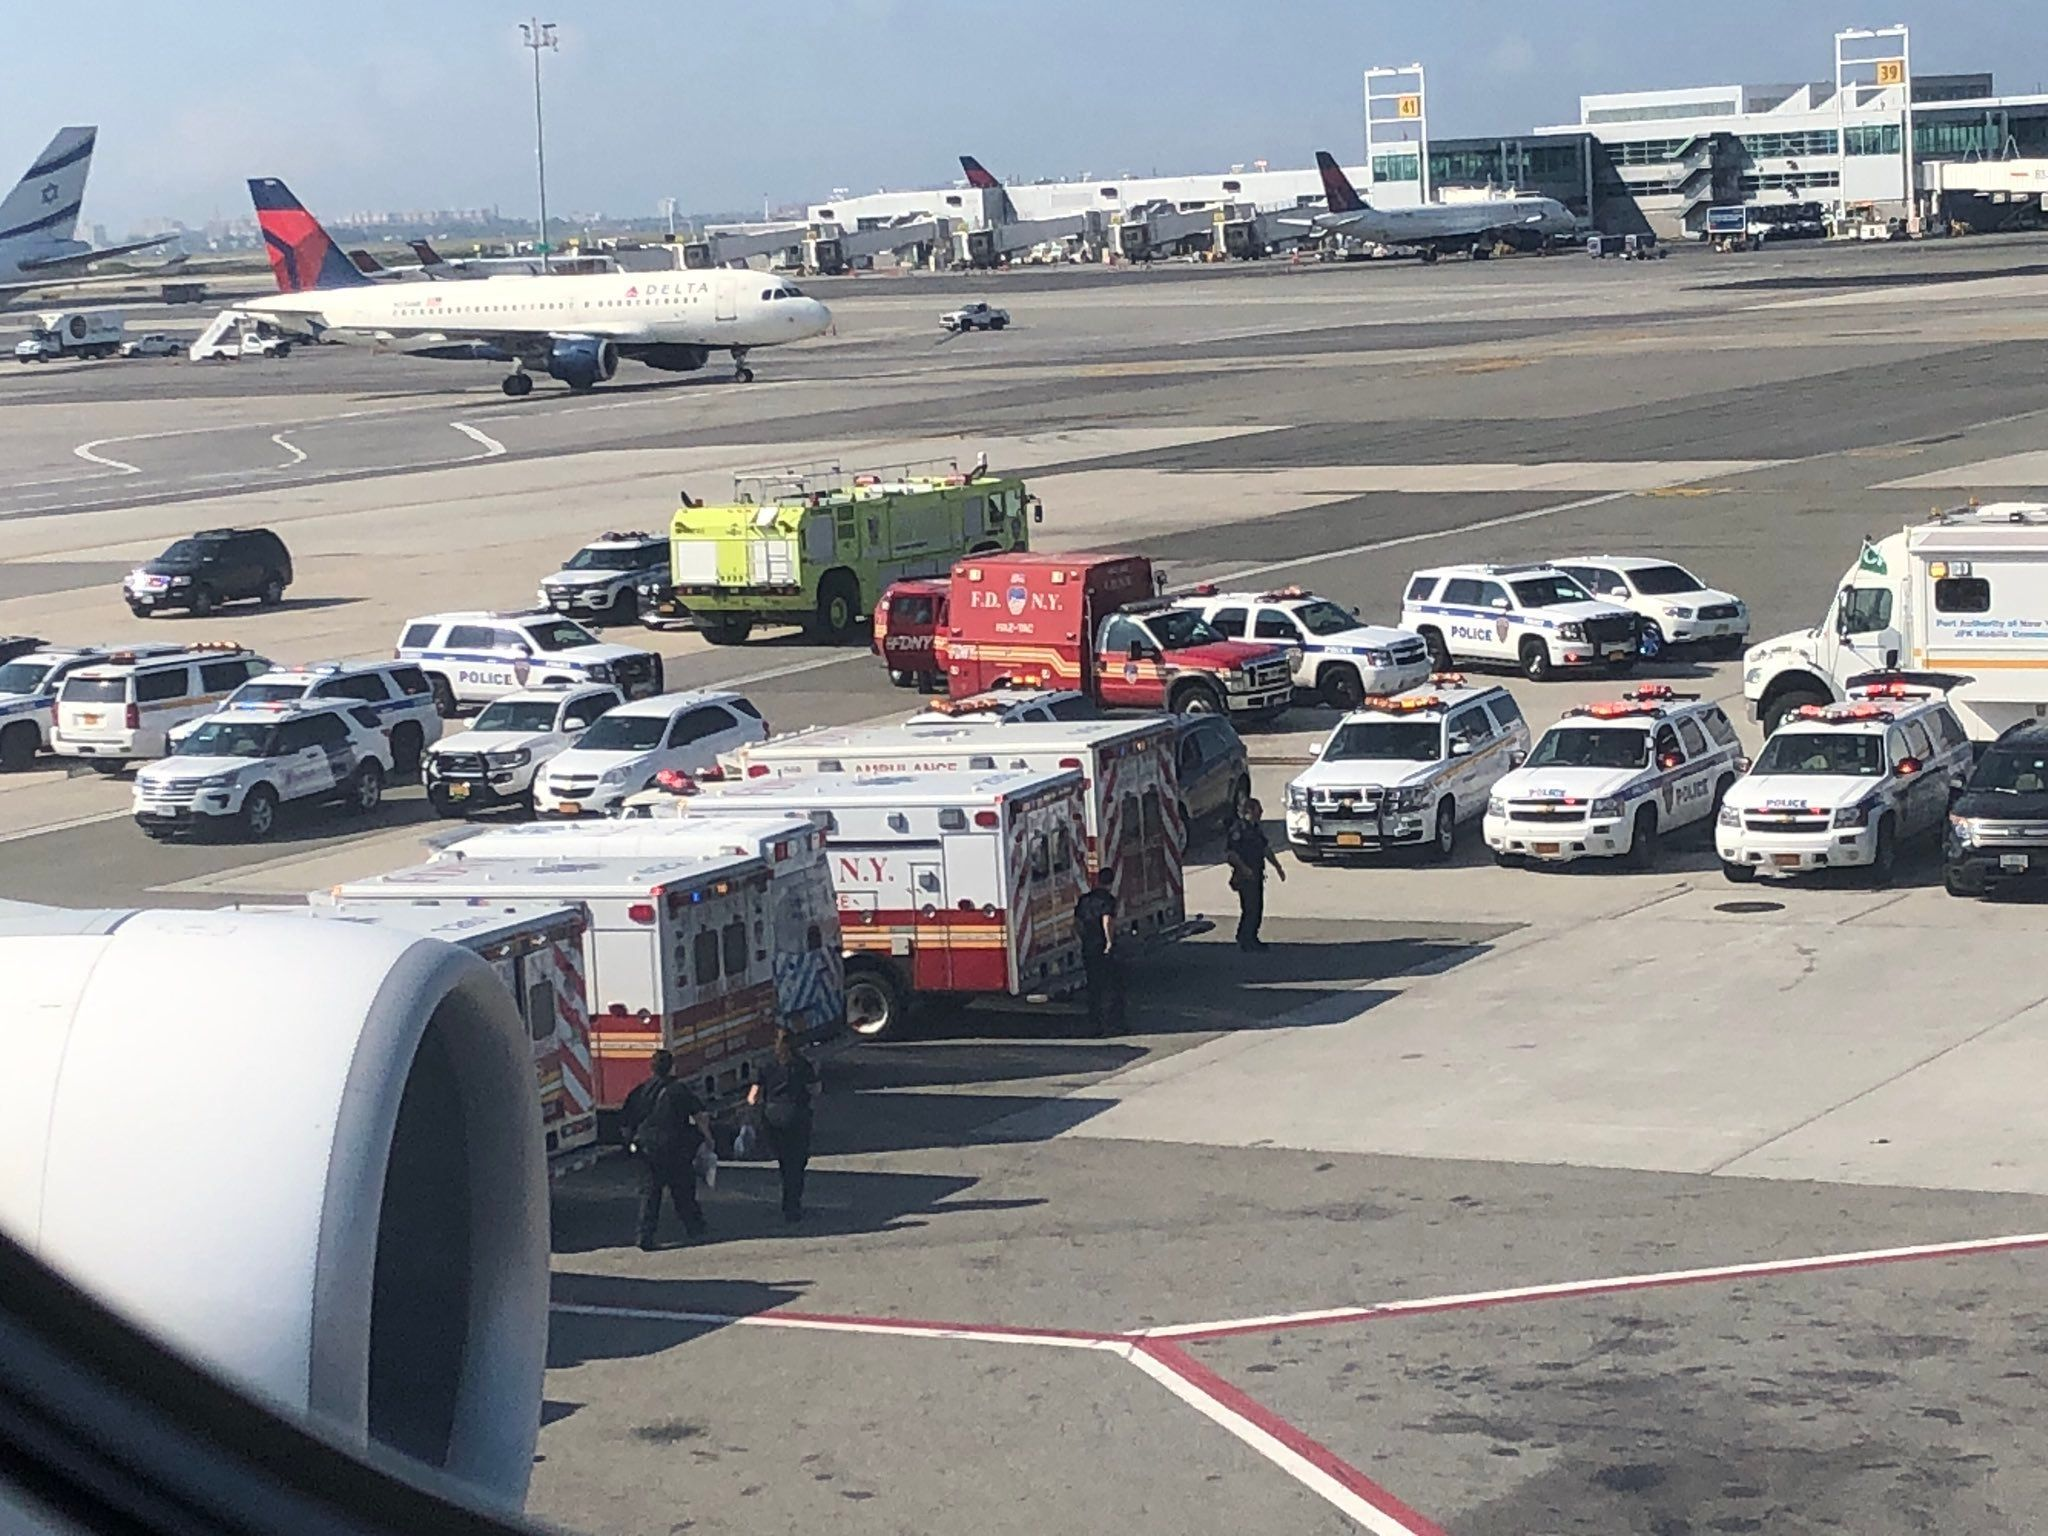 Dubai Flight Quarantined At JFK After Reports Of Sick Passengers